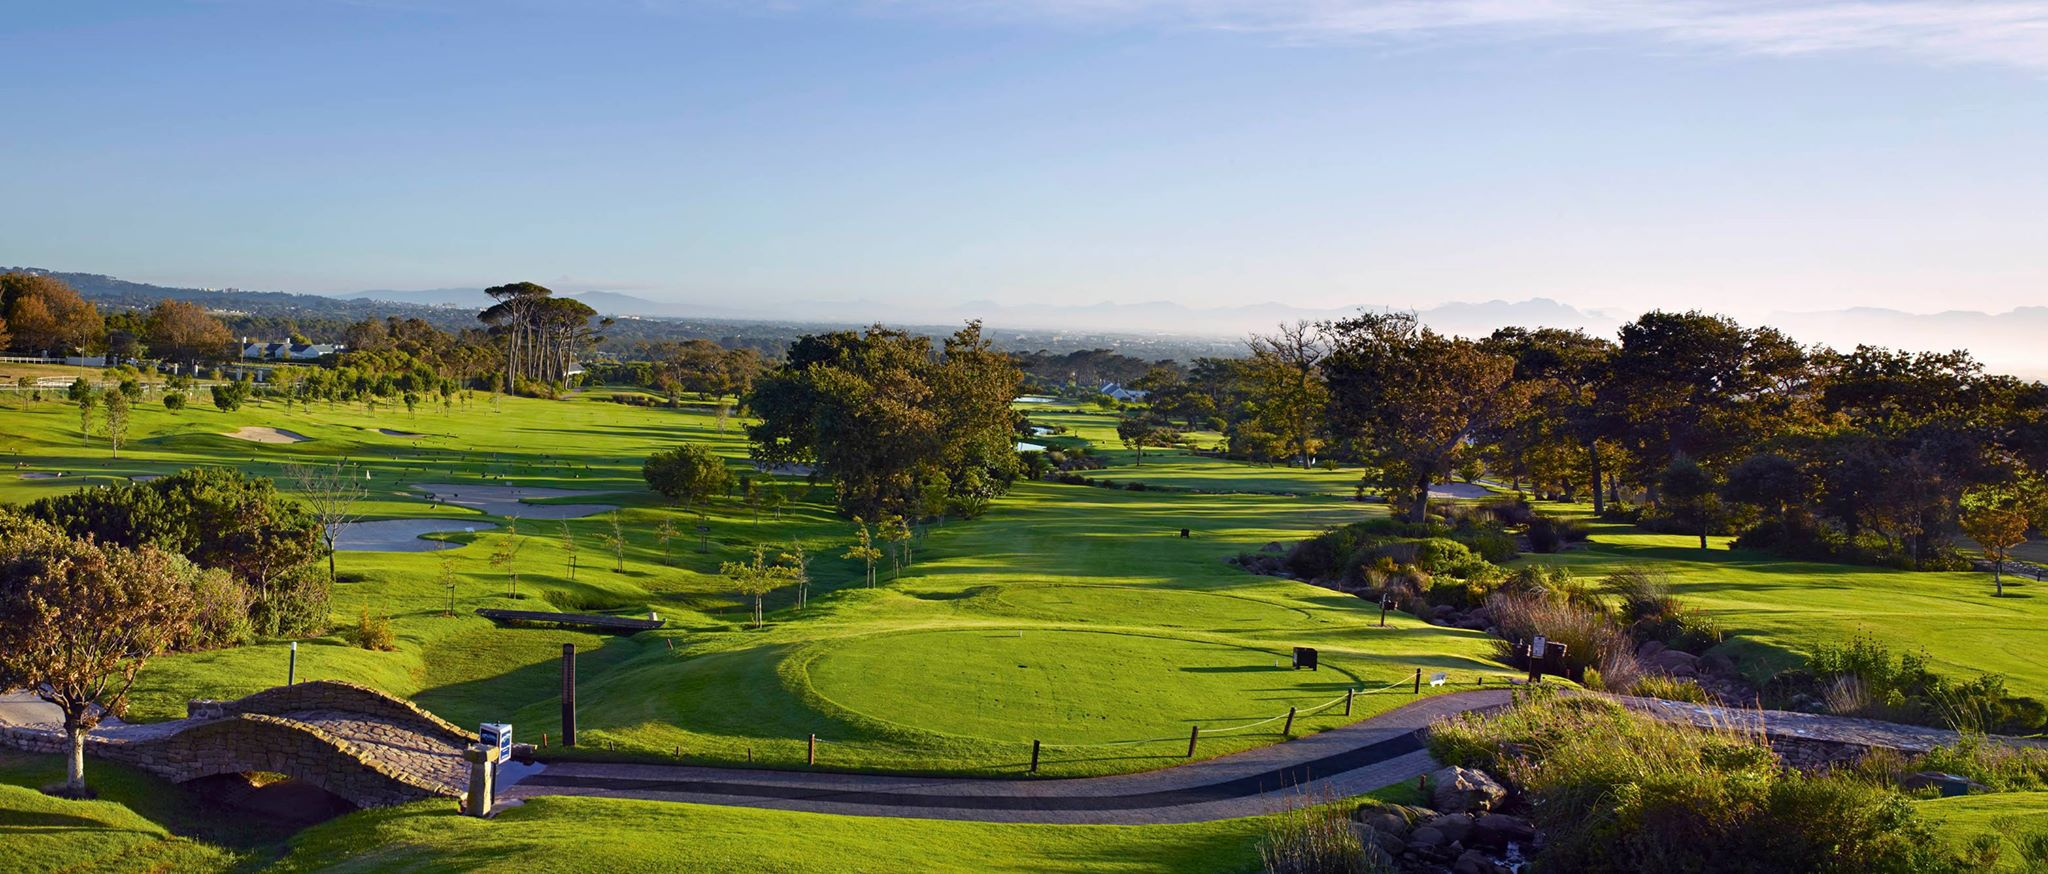 Steenberg golf club cover picture